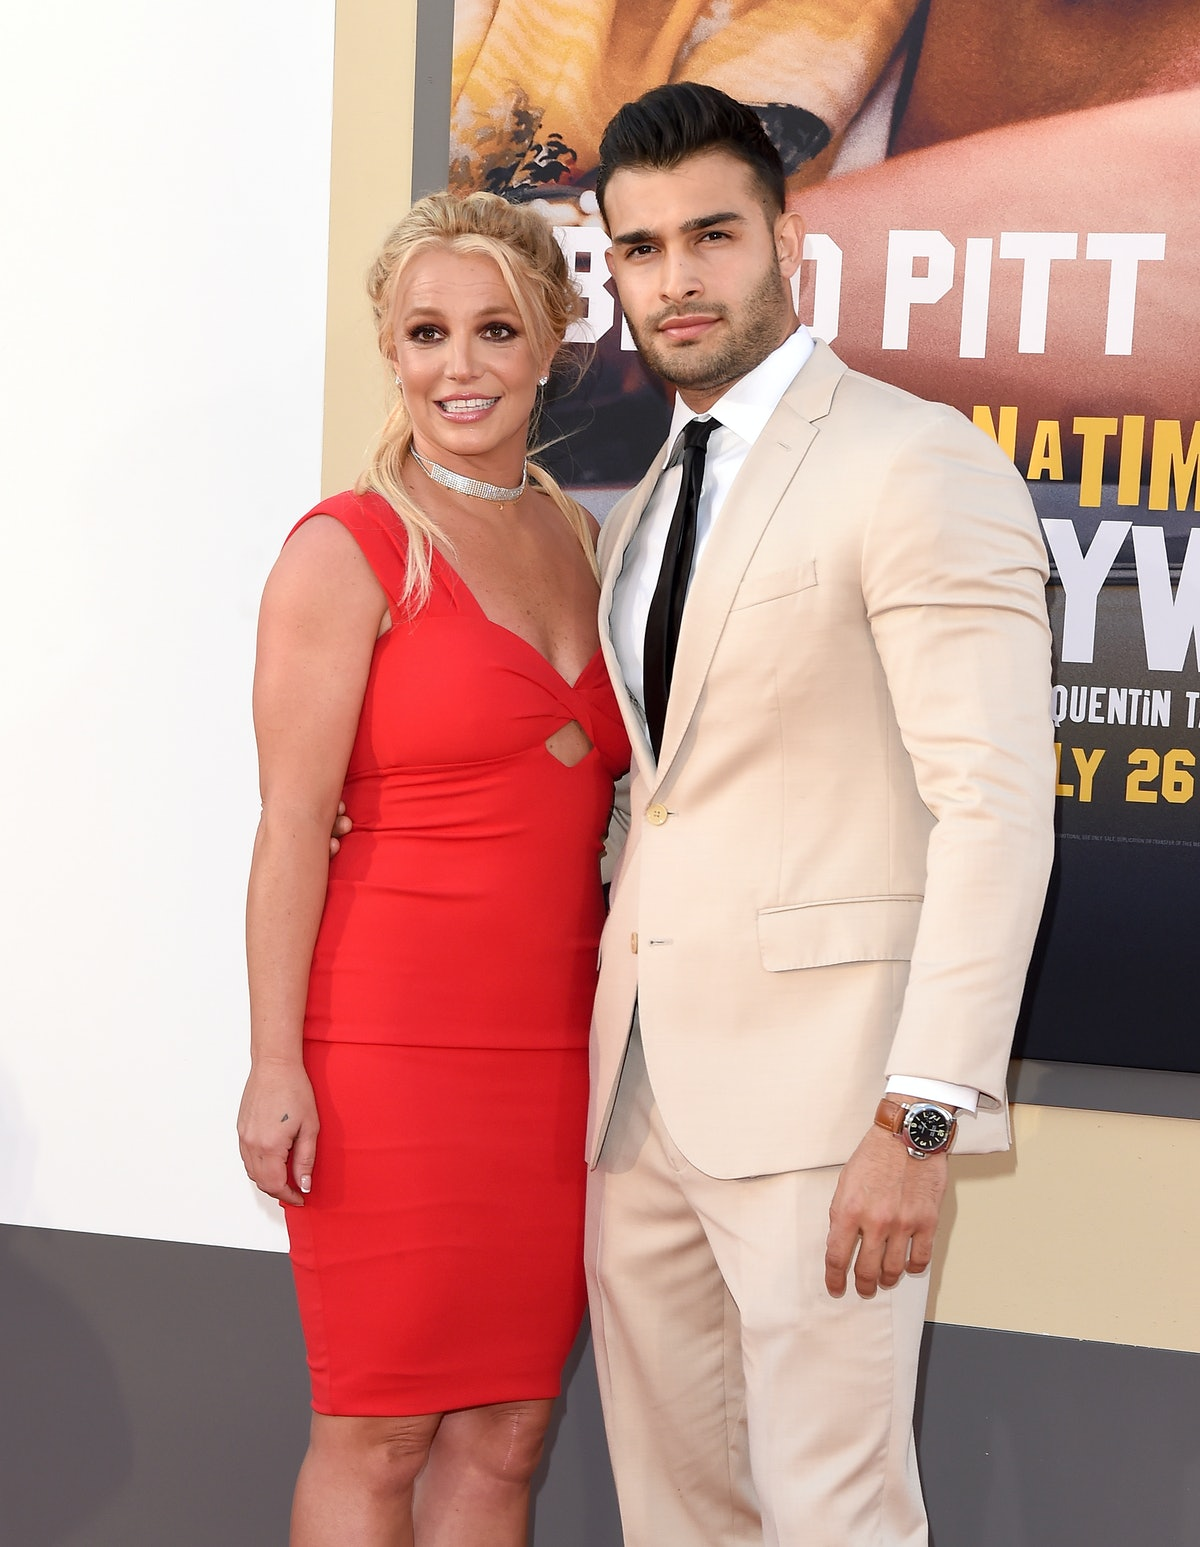 Britney Spears and Sam Asghari at a movie premiere, who got engaged in September 2021 with a huge ri...